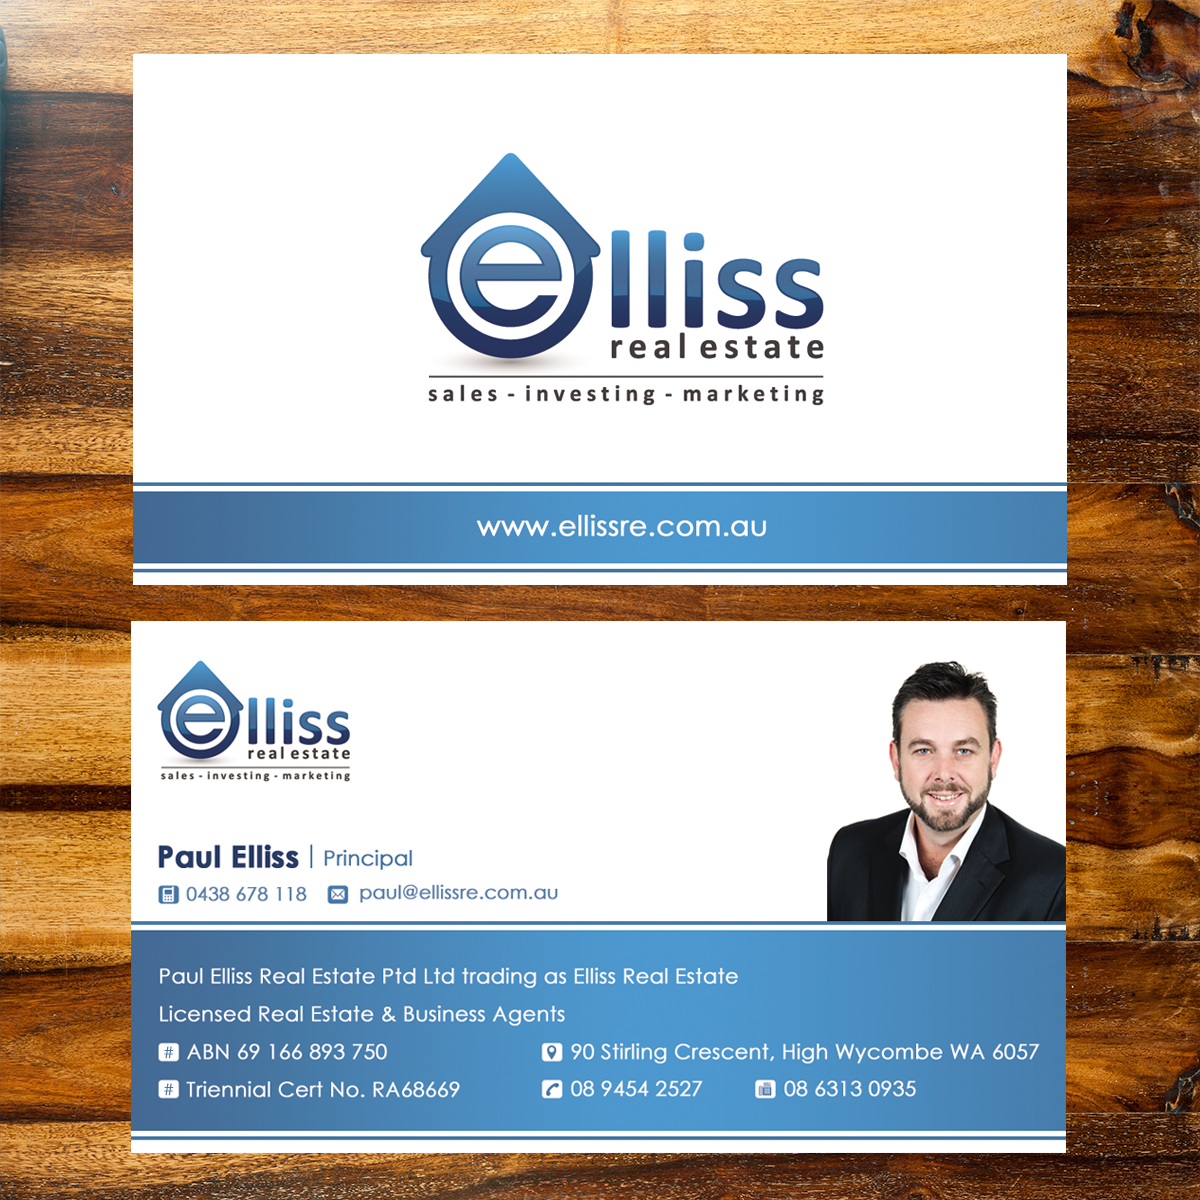 59 bold business card designs printing business card design business card design by edoers for elliss real estate design 3988146 reheart Image collections